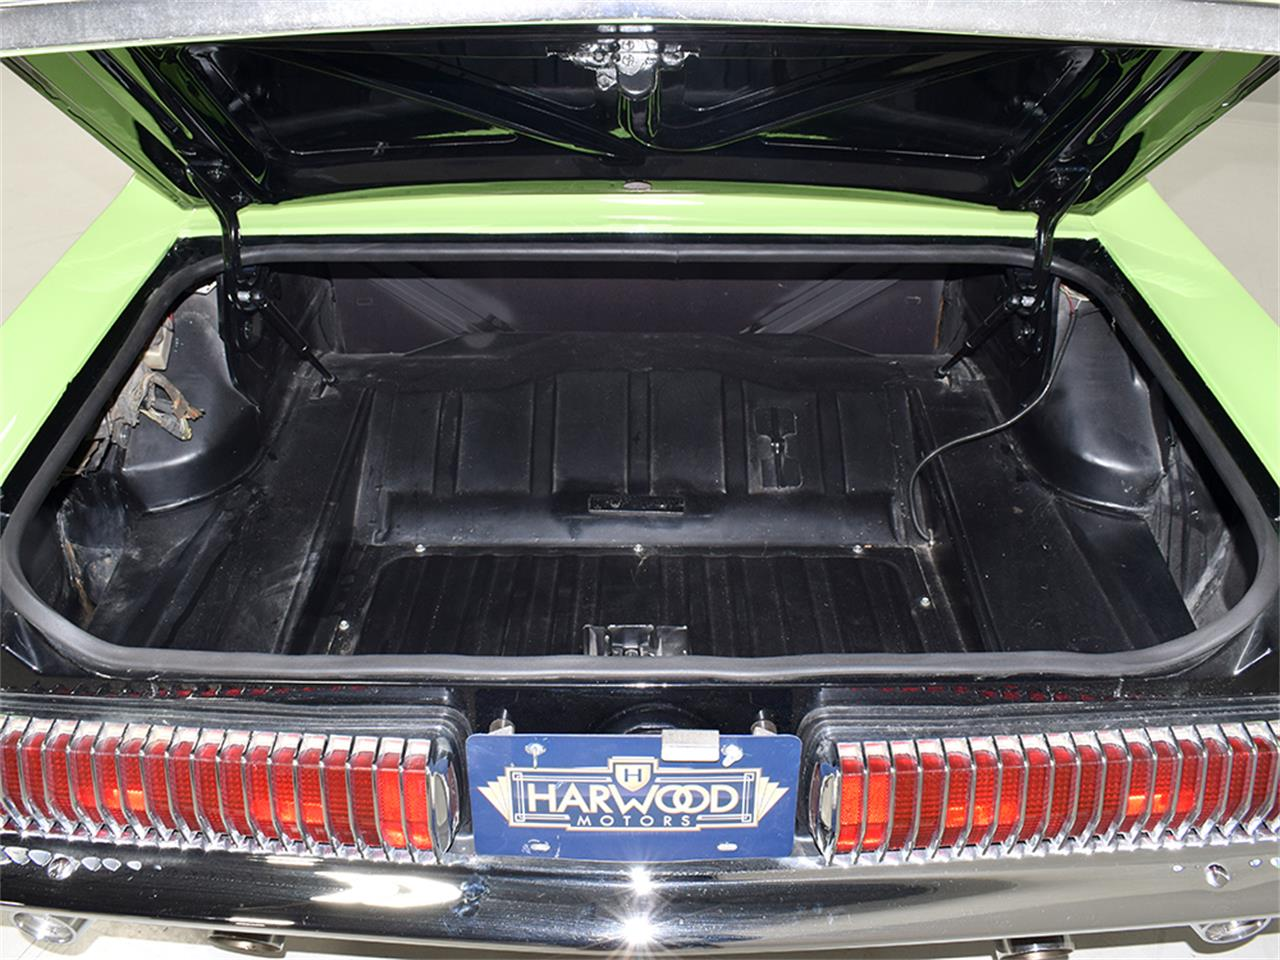 Large Picture of Classic '67 Mercury Cougar located in Ohio - $49,900.00 Offered by Harwood Motors, LTD. - MH5X